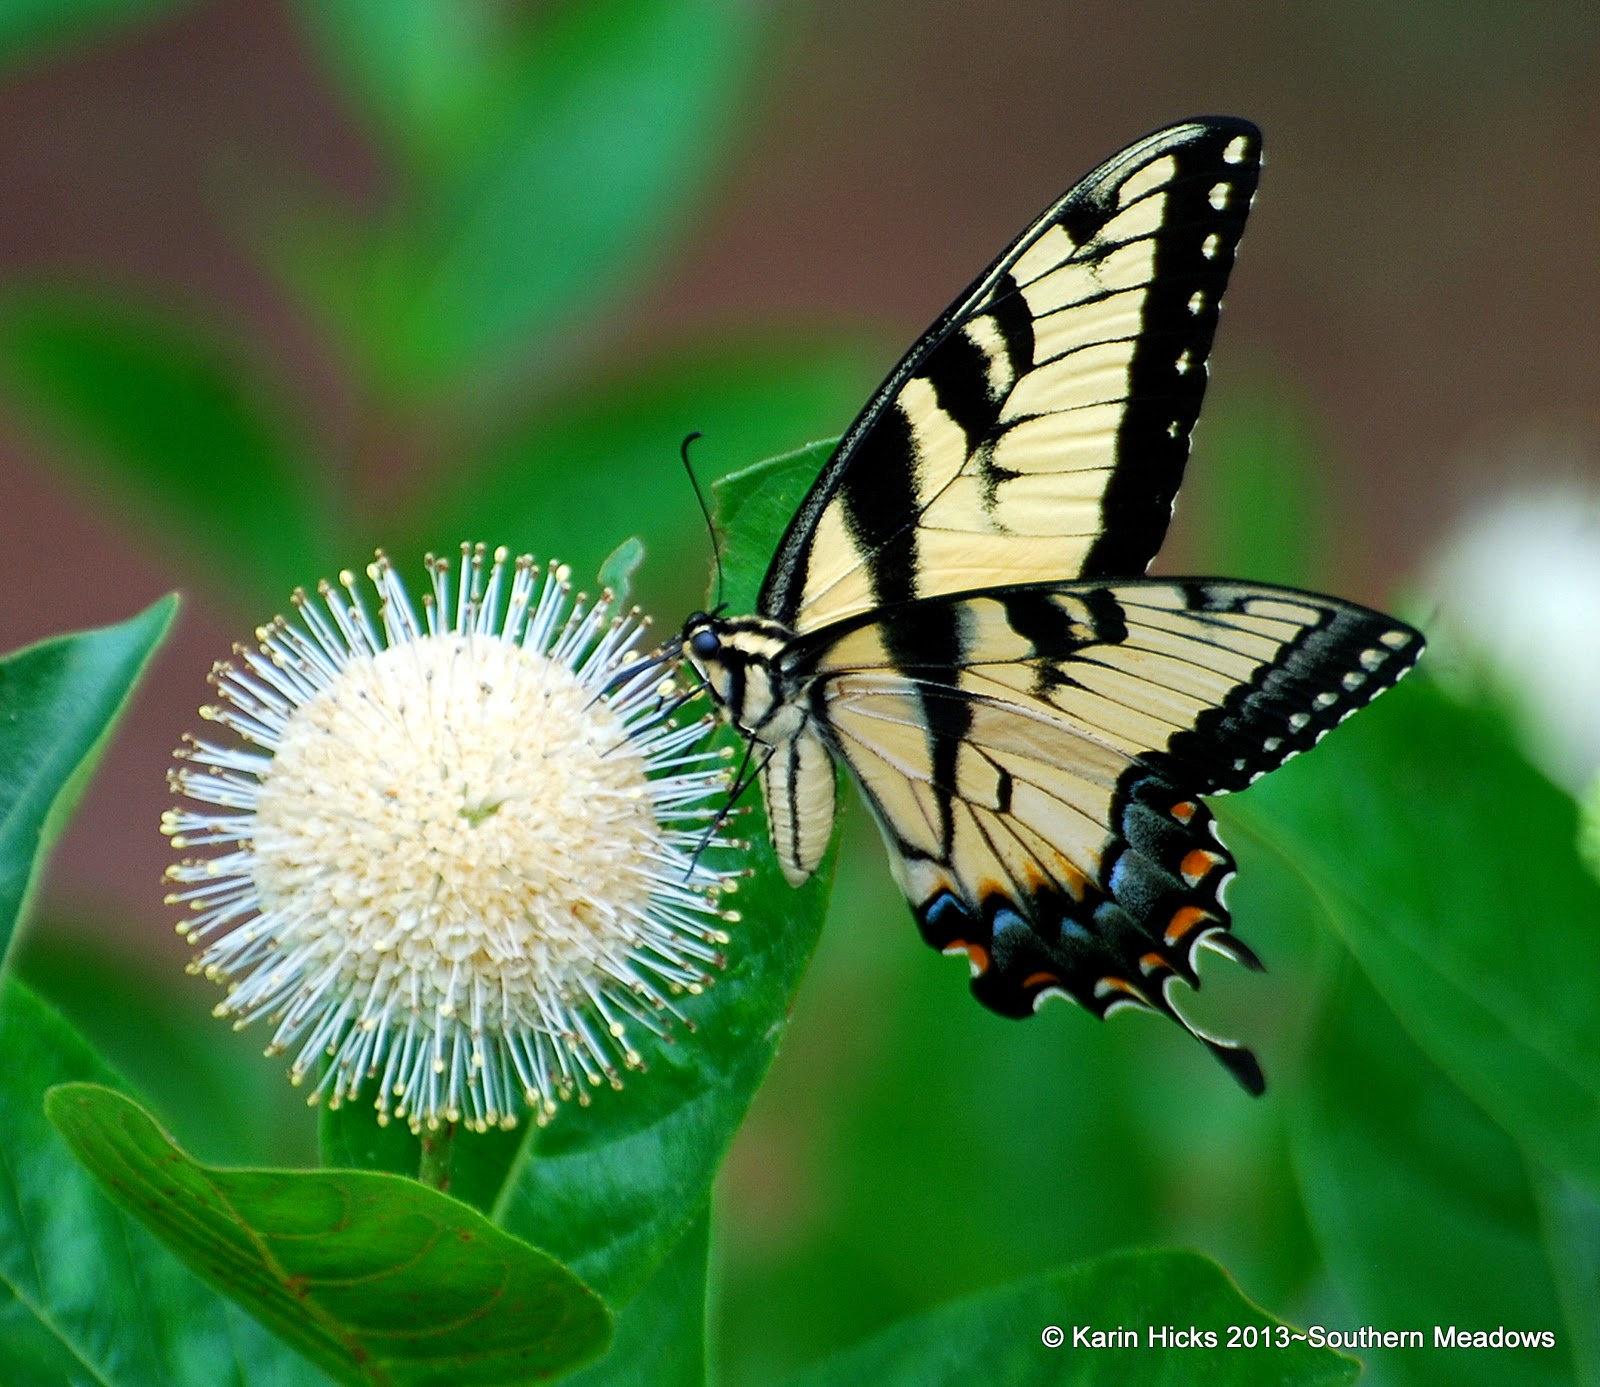 Eastern Tiger Swallowtail butterfly on button bush bloom